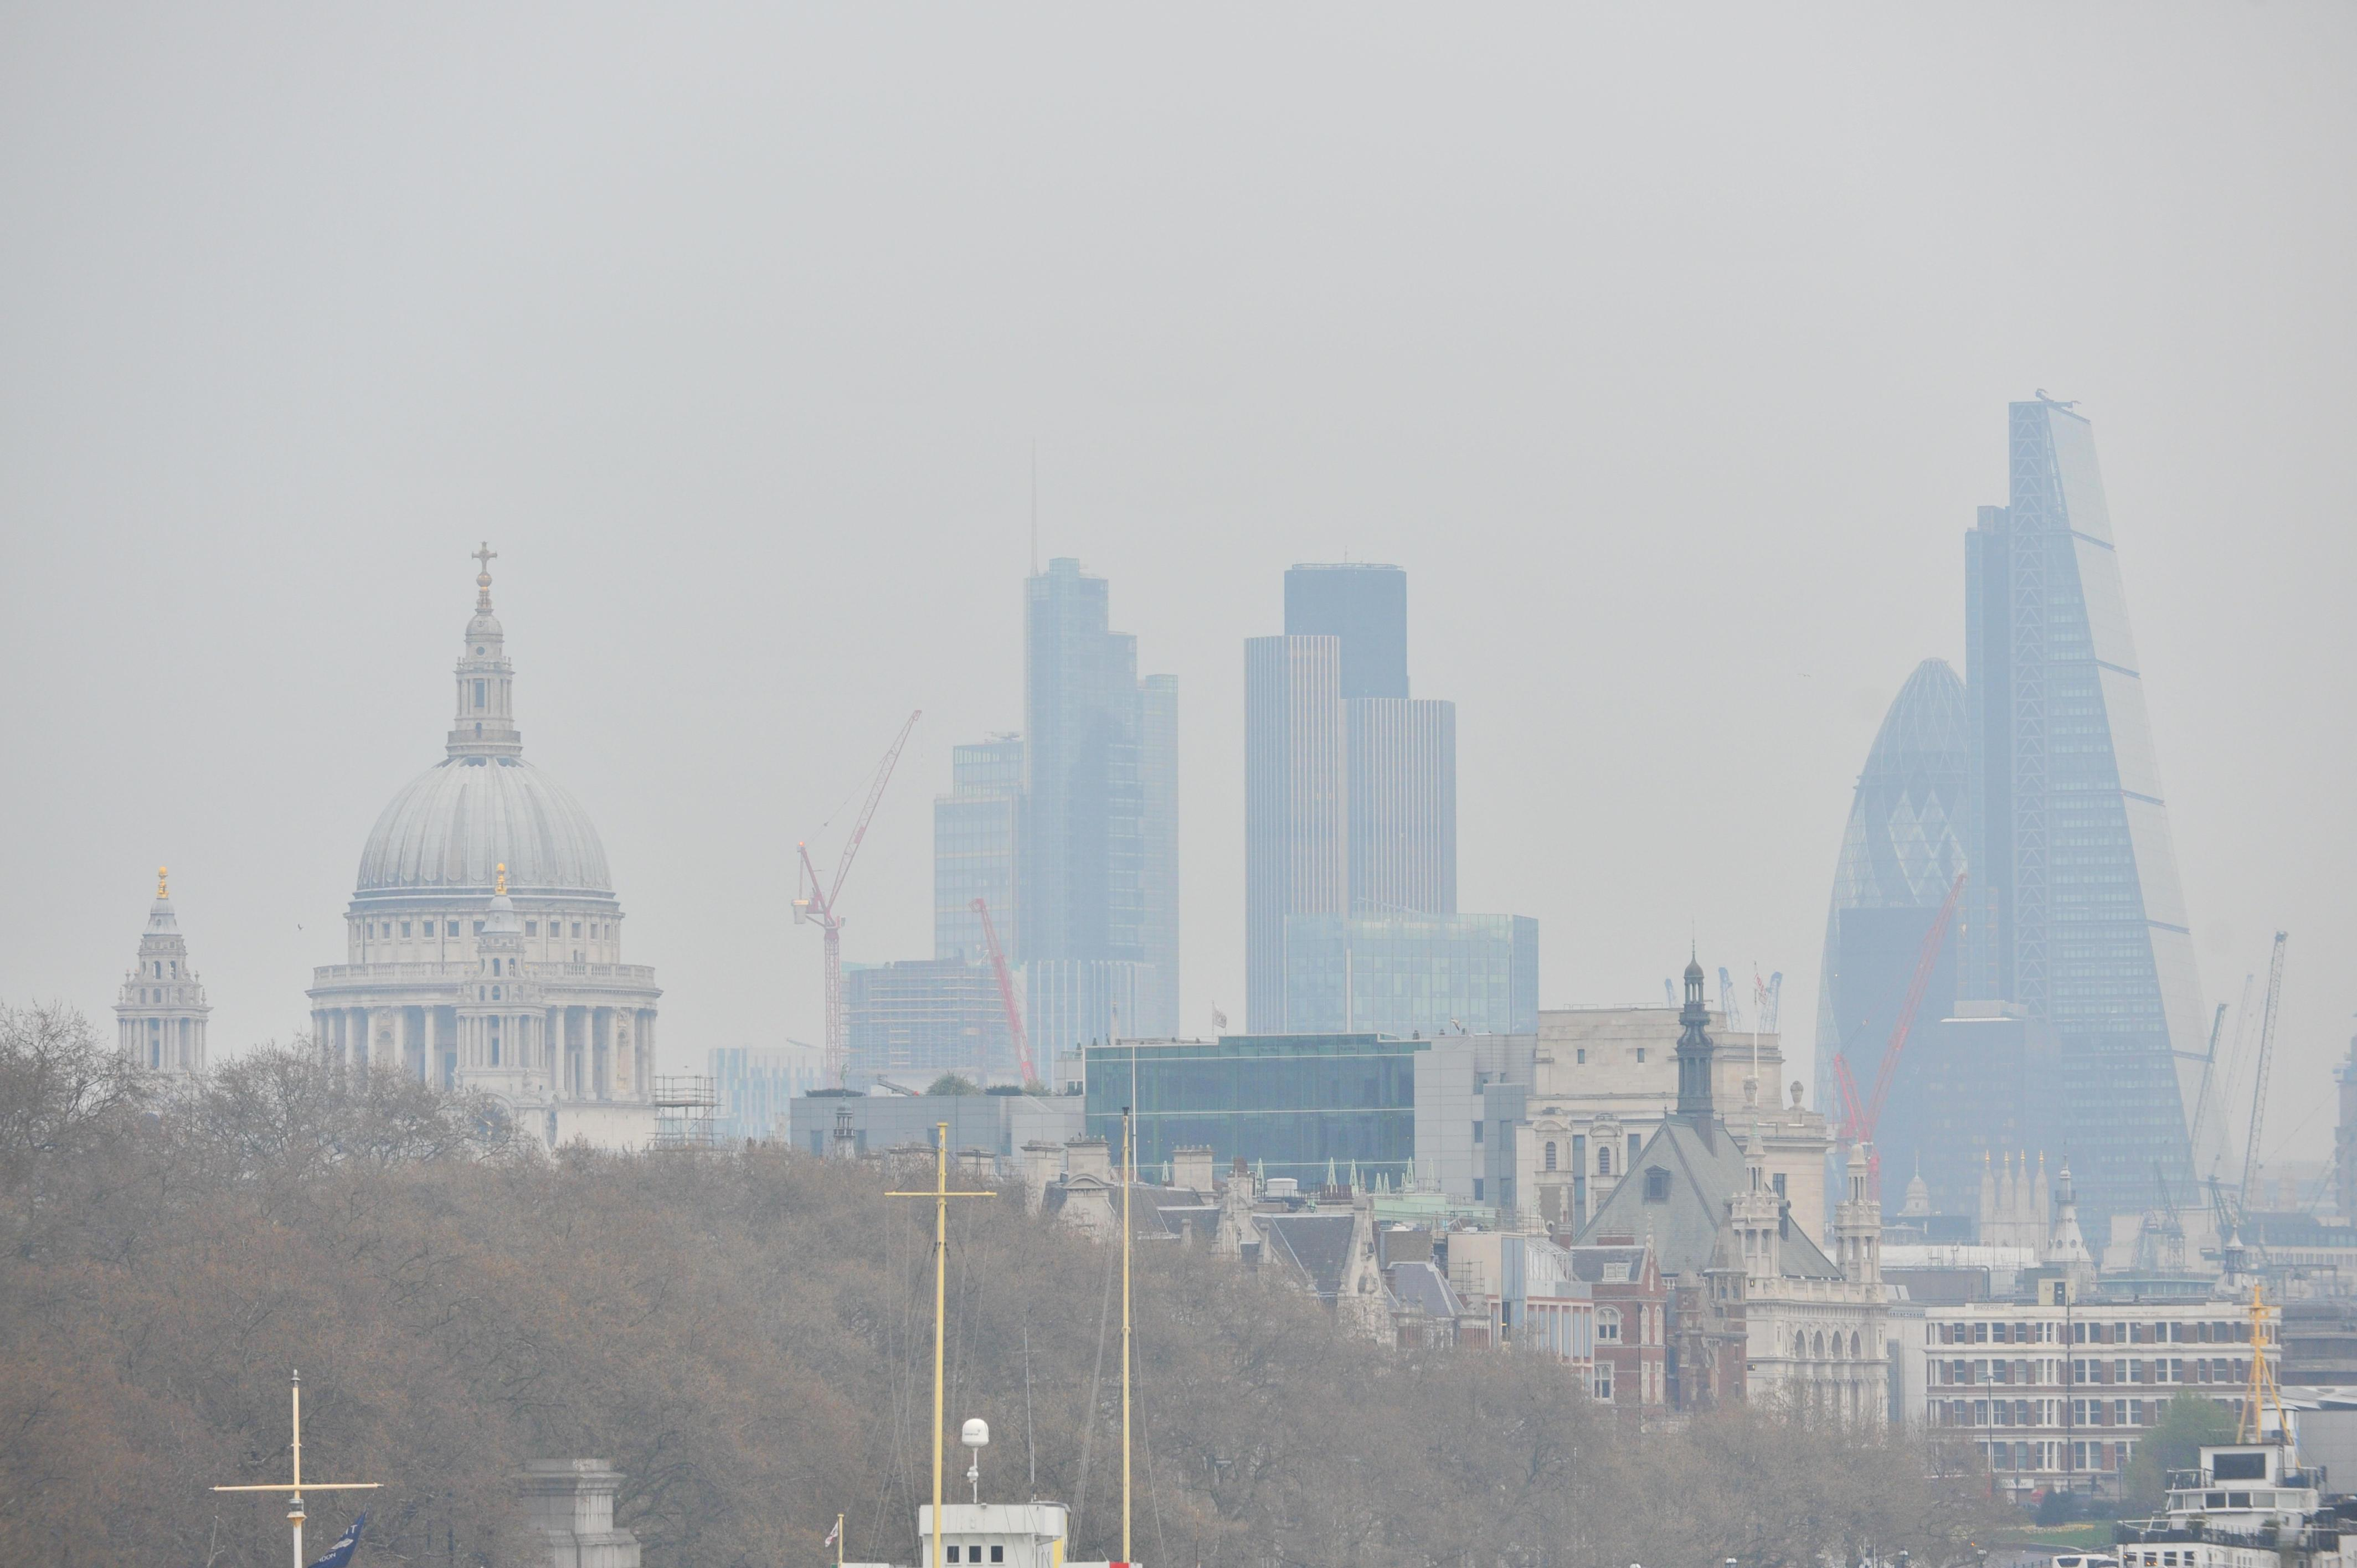 Congestion charges are helping to tackle air pollution, say officials